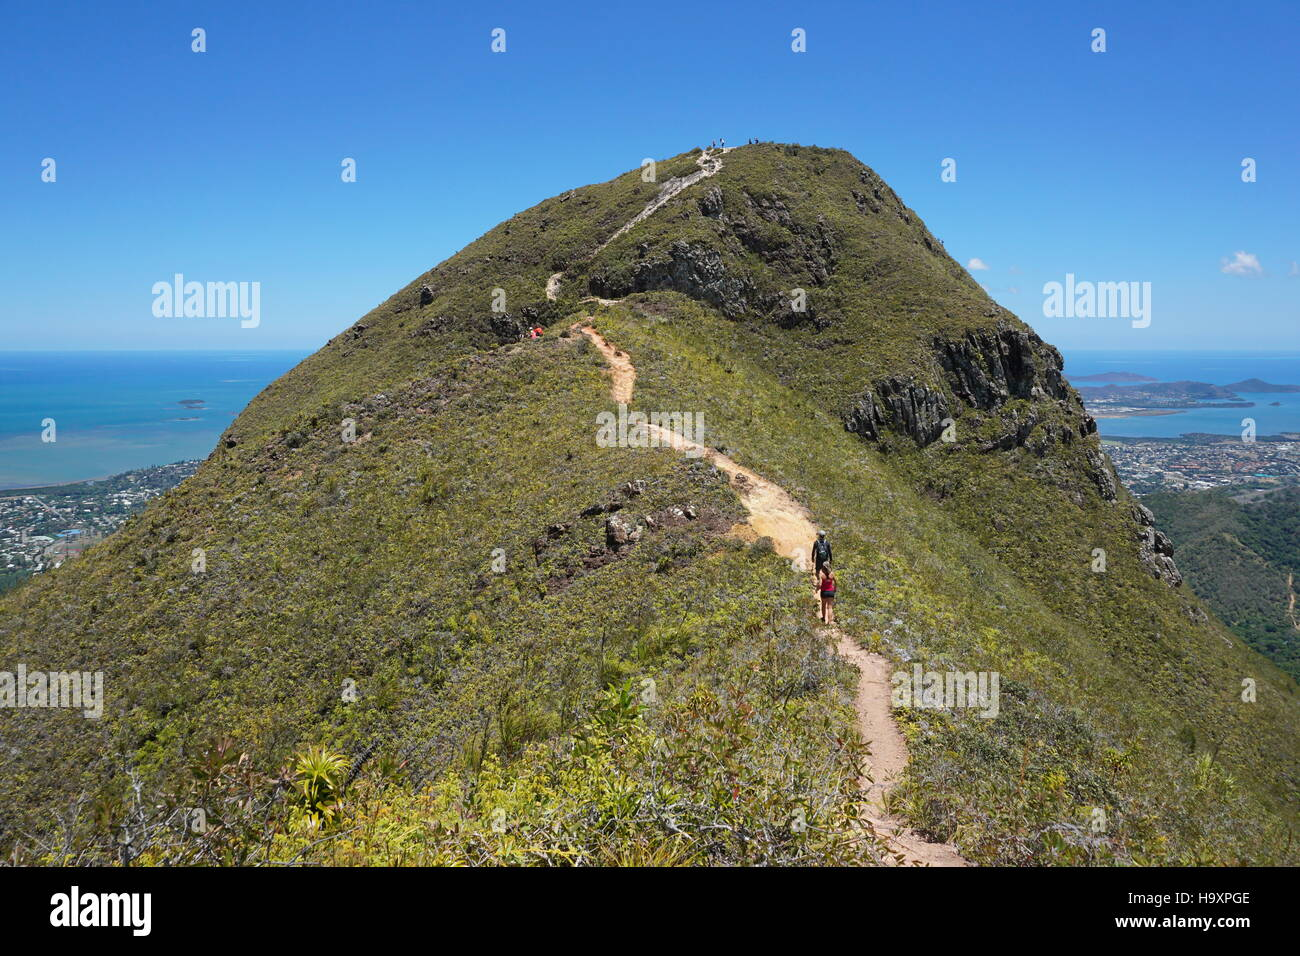 The peak Malaoui with people hiking on the footpath, Noumea, New Caledonia, south Pacific - Stock Image